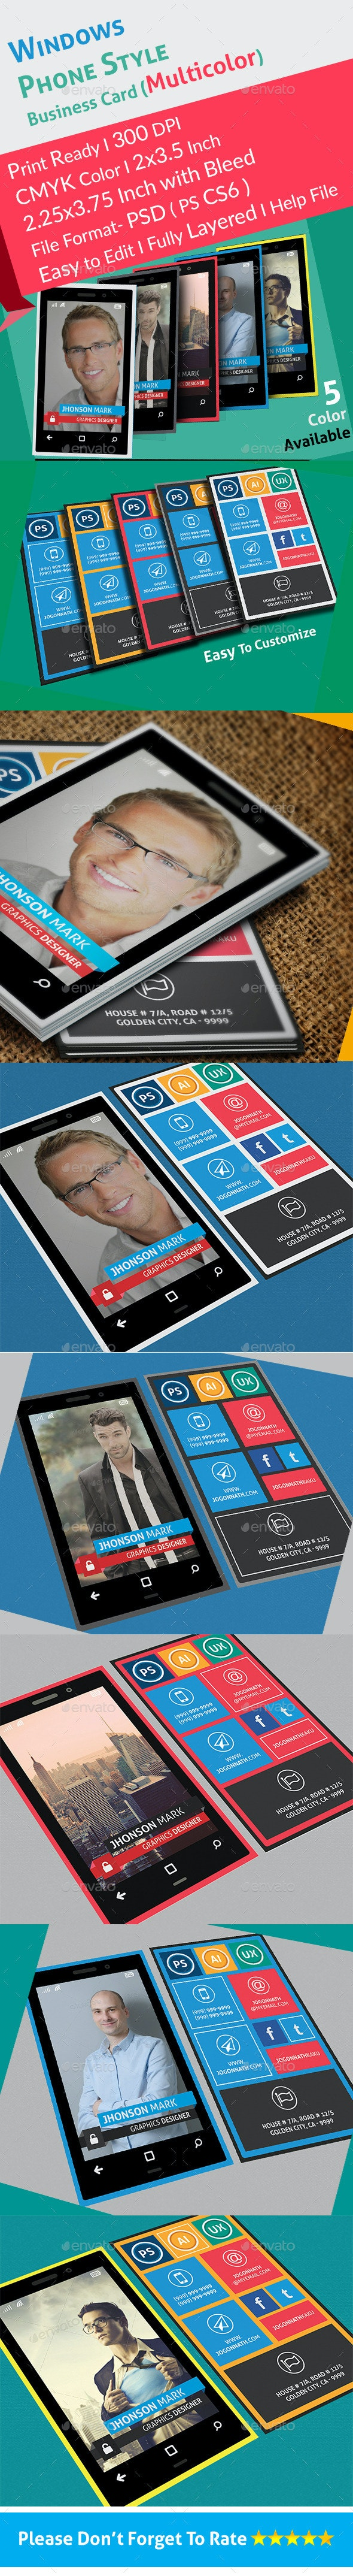 Windows Phone Style Colorful Business Card - Real Objects Business Cards